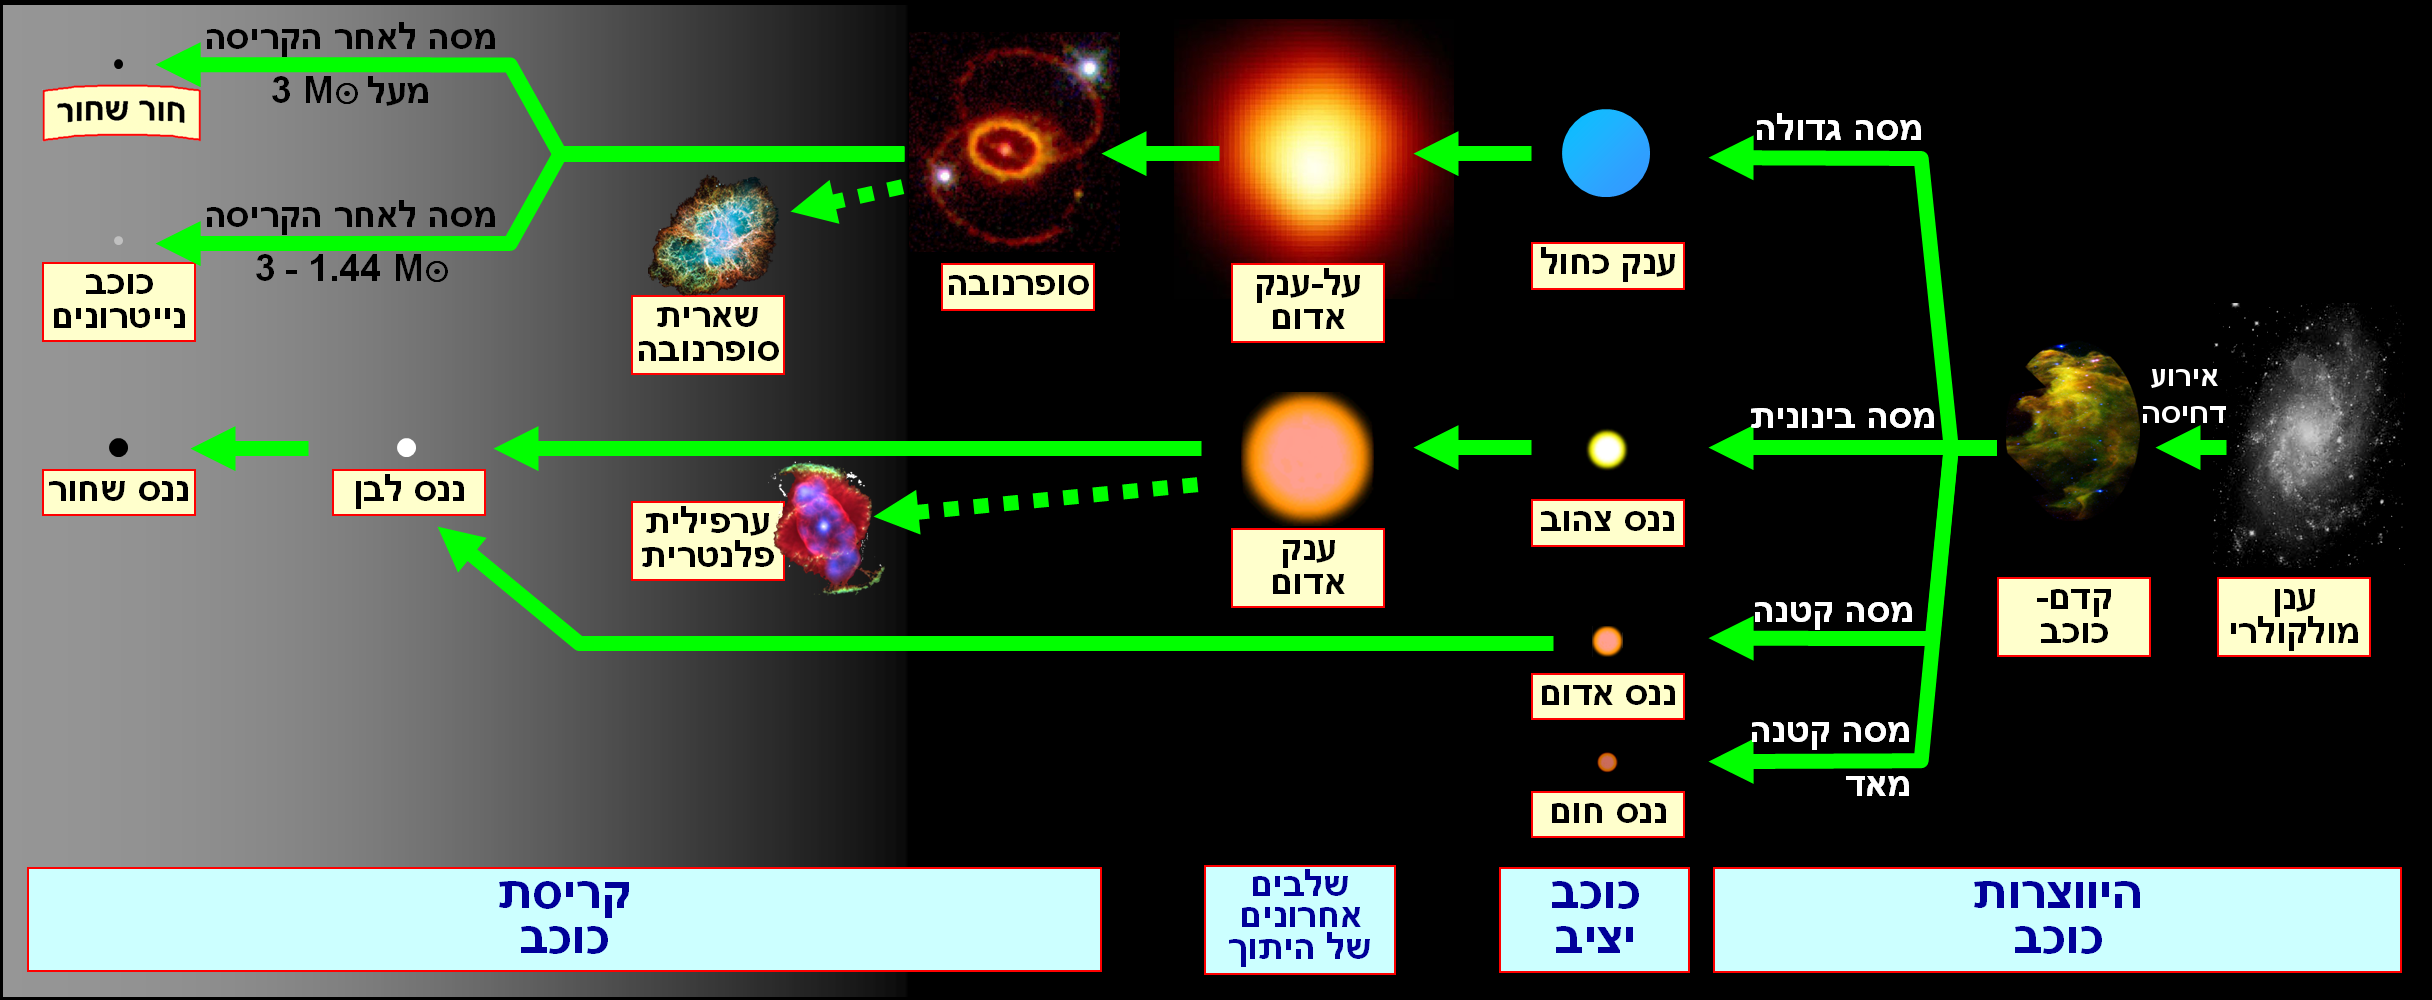 worksheet Stellar Evolution Worksheet stellar evolution hebrew png image edited from httpsupload wikimedia orgwikipediacommons00fstellar png